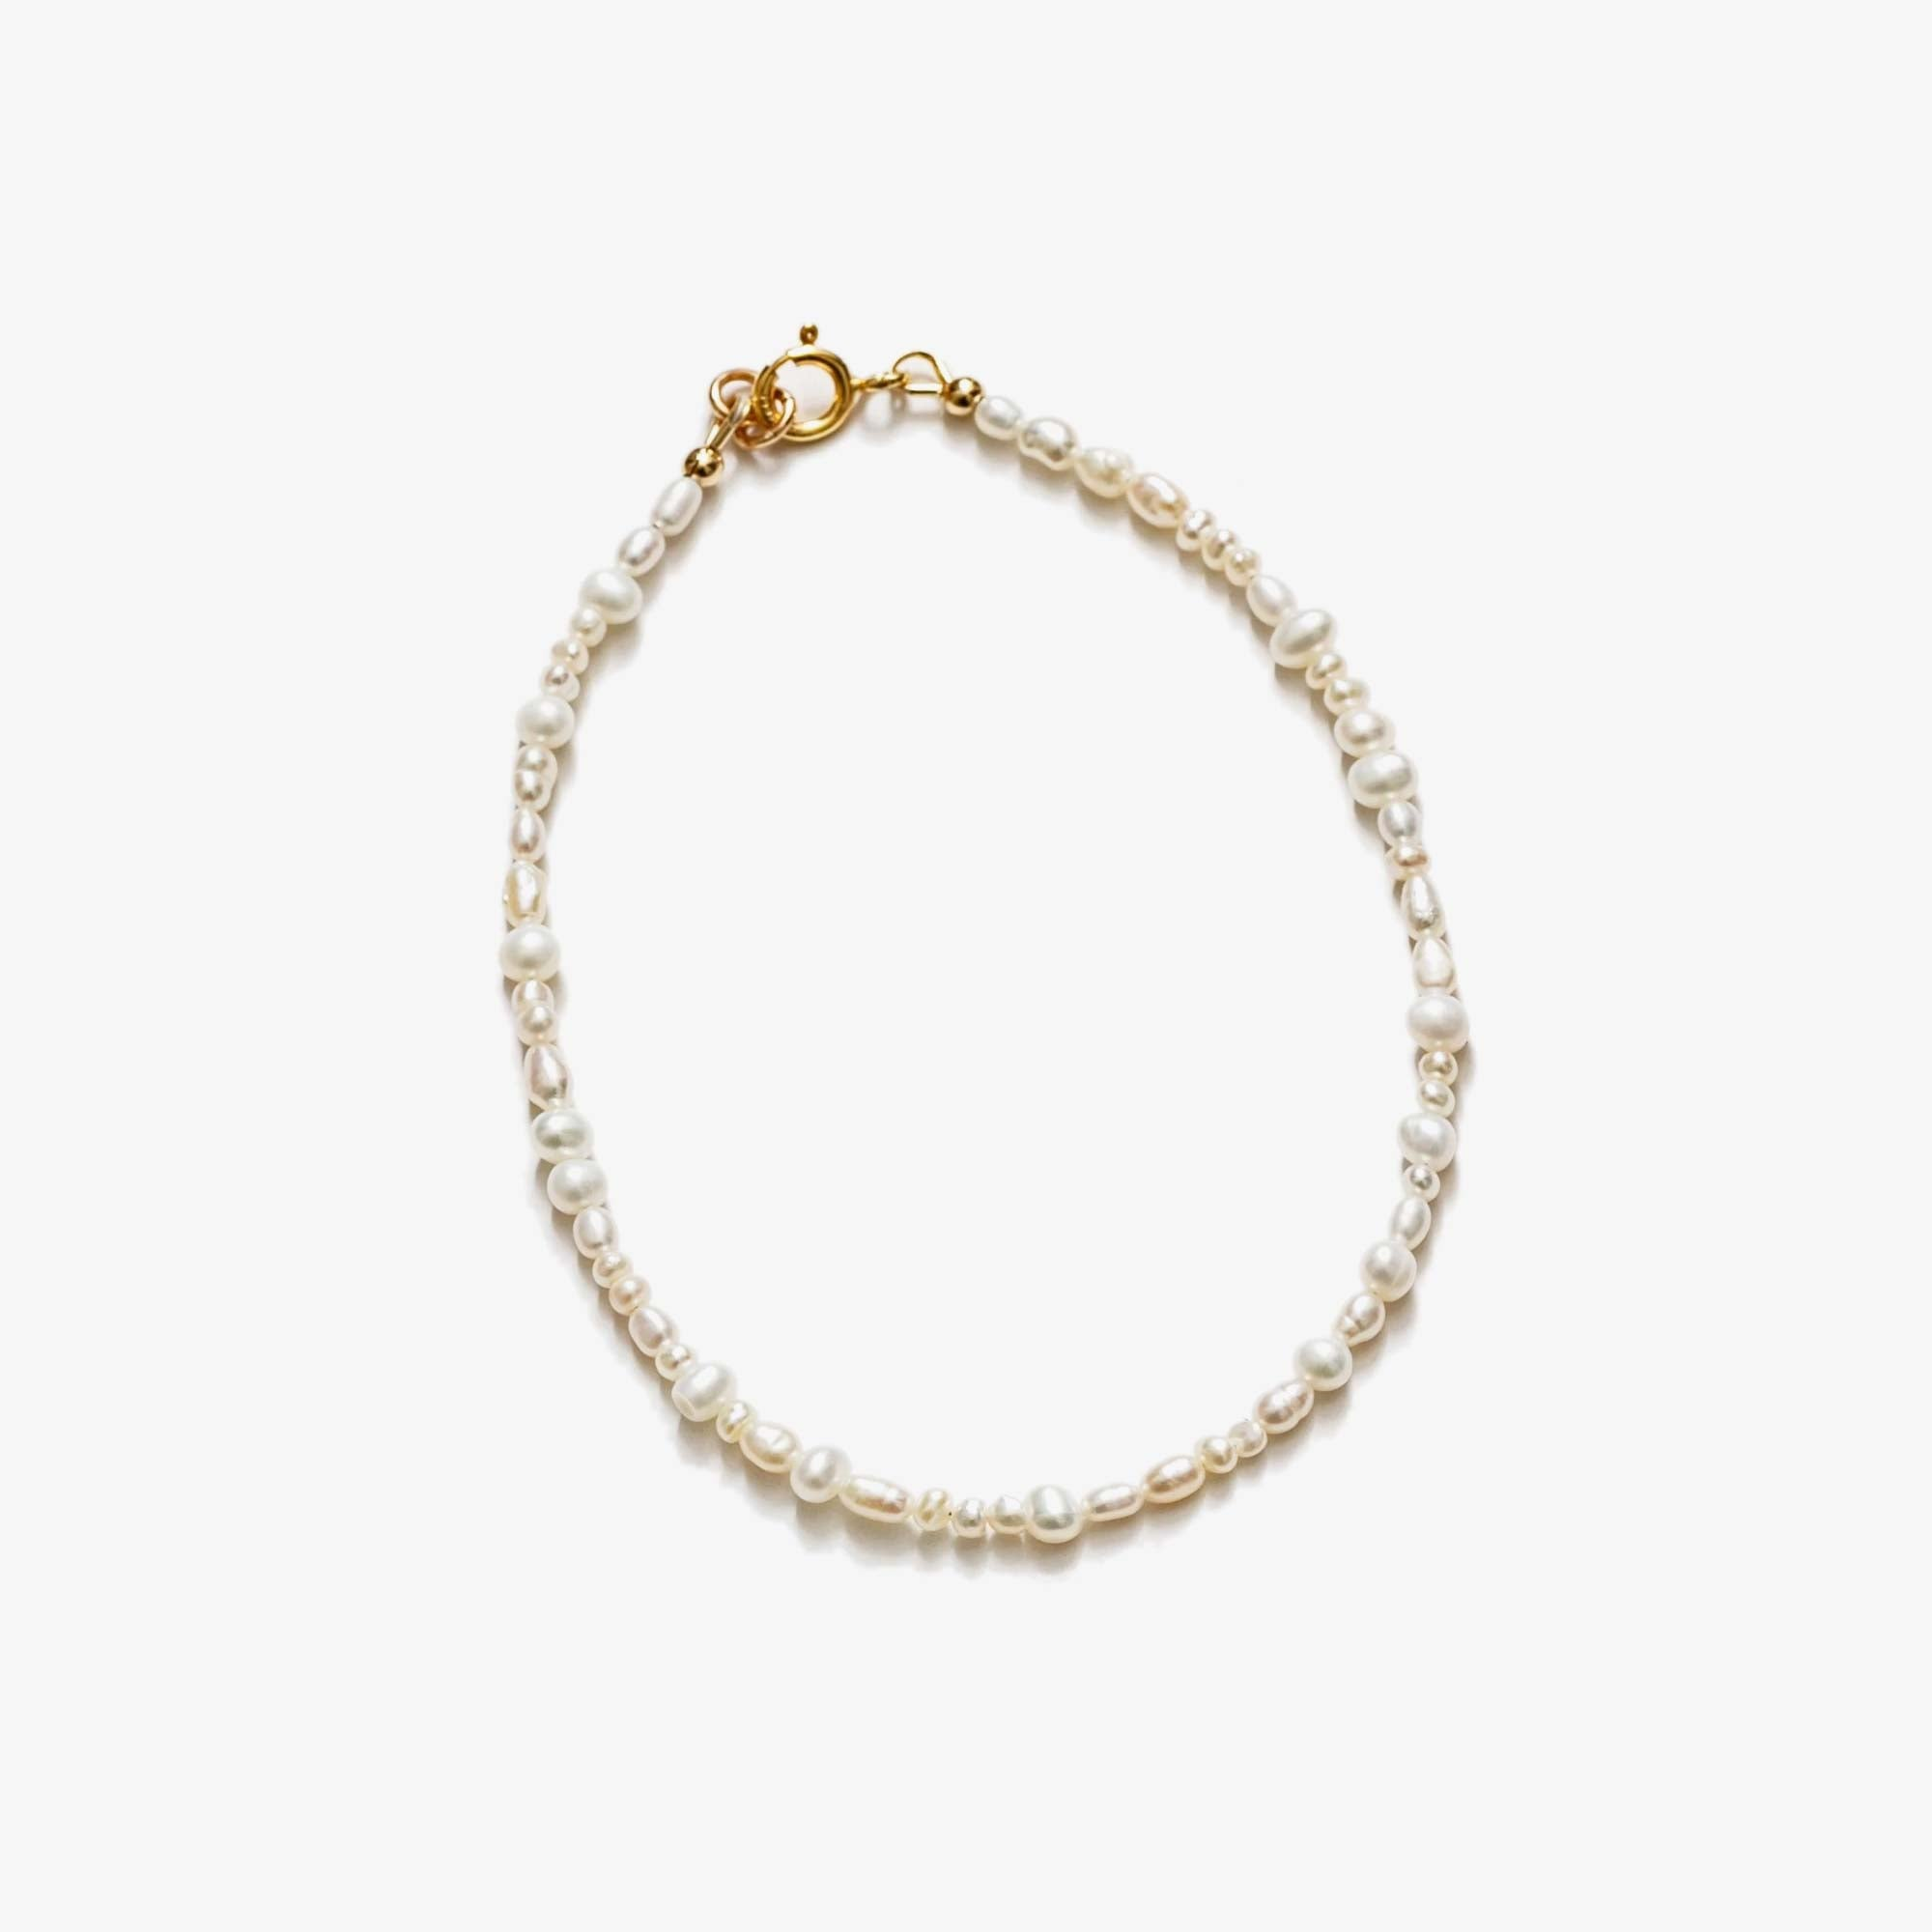 Wolf Circus Renata Anklet - Freshwater Pearl / Gold 1